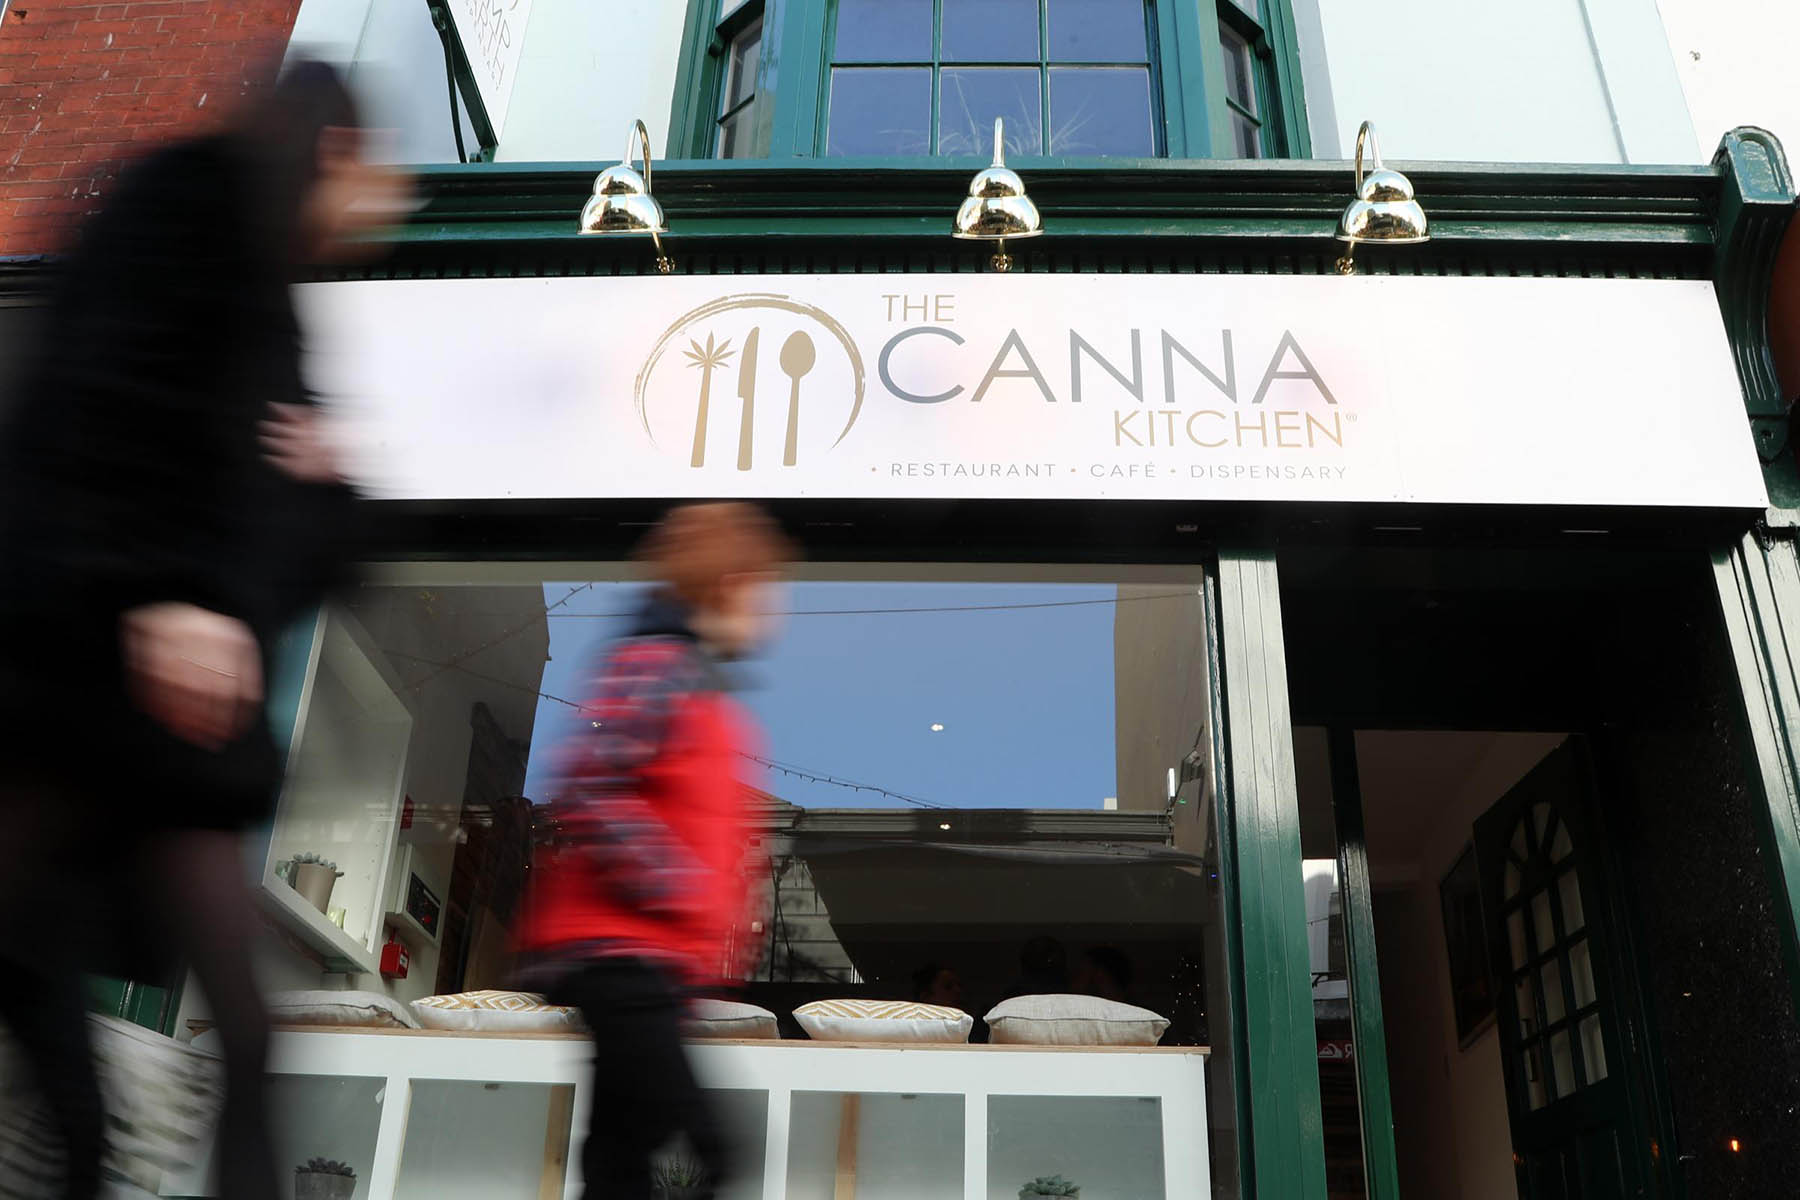 The Canna Kitchen in Brighton before being raided and closed